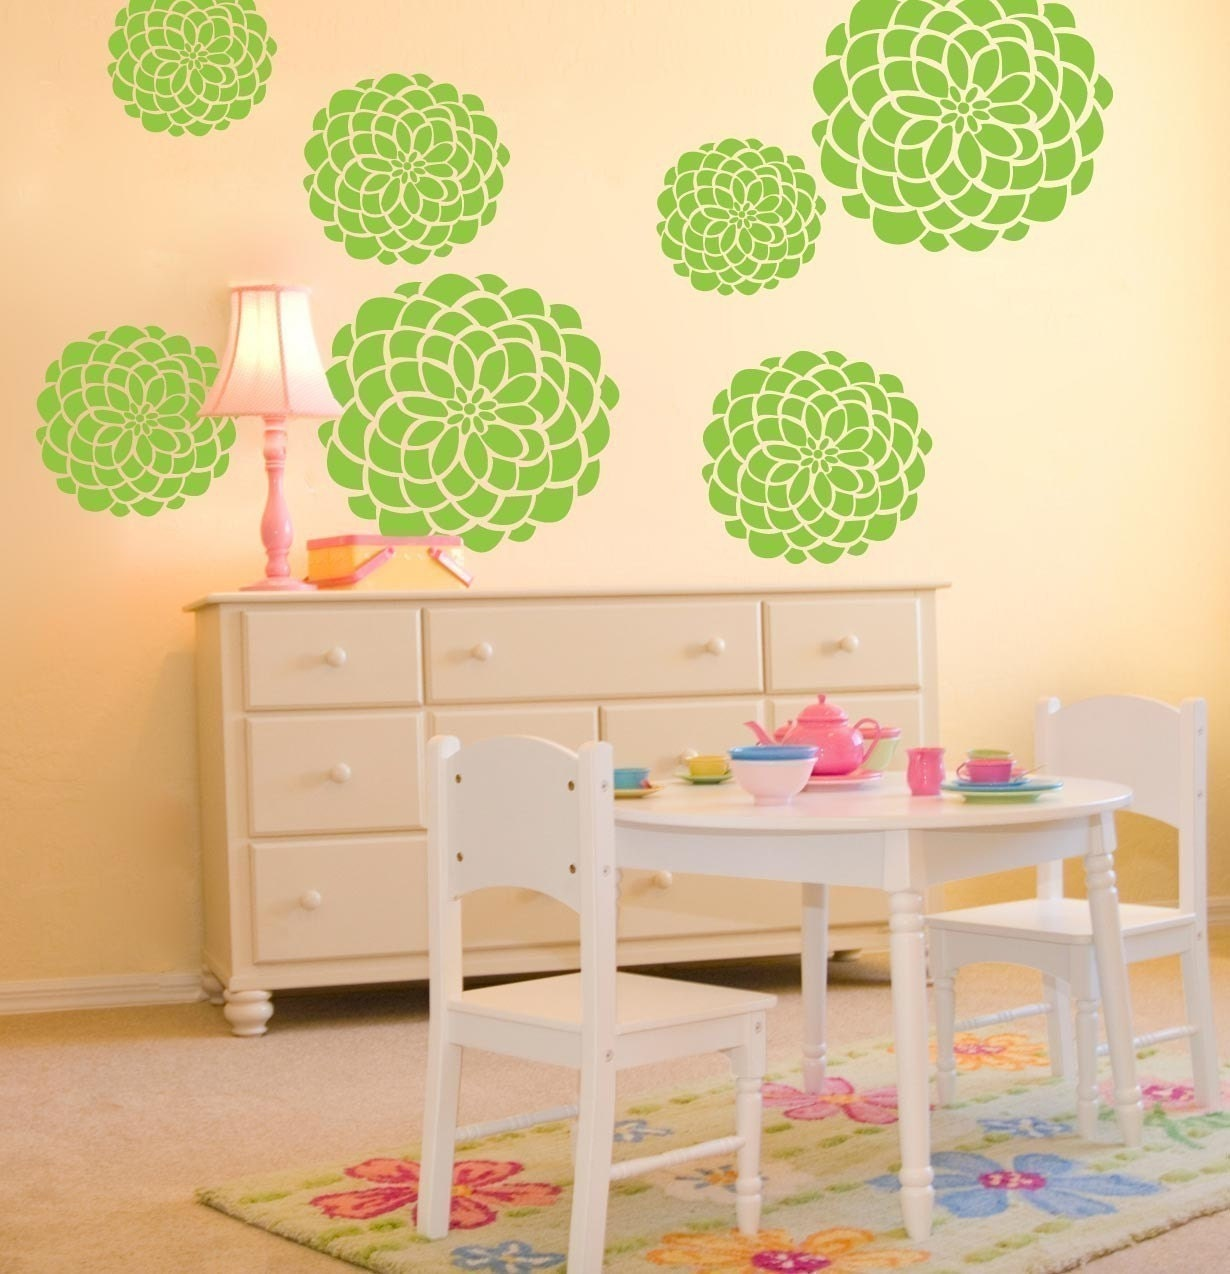 Vinyl wall decals 7 large flower bloom graphics variety of zoom amipublicfo Choice Image